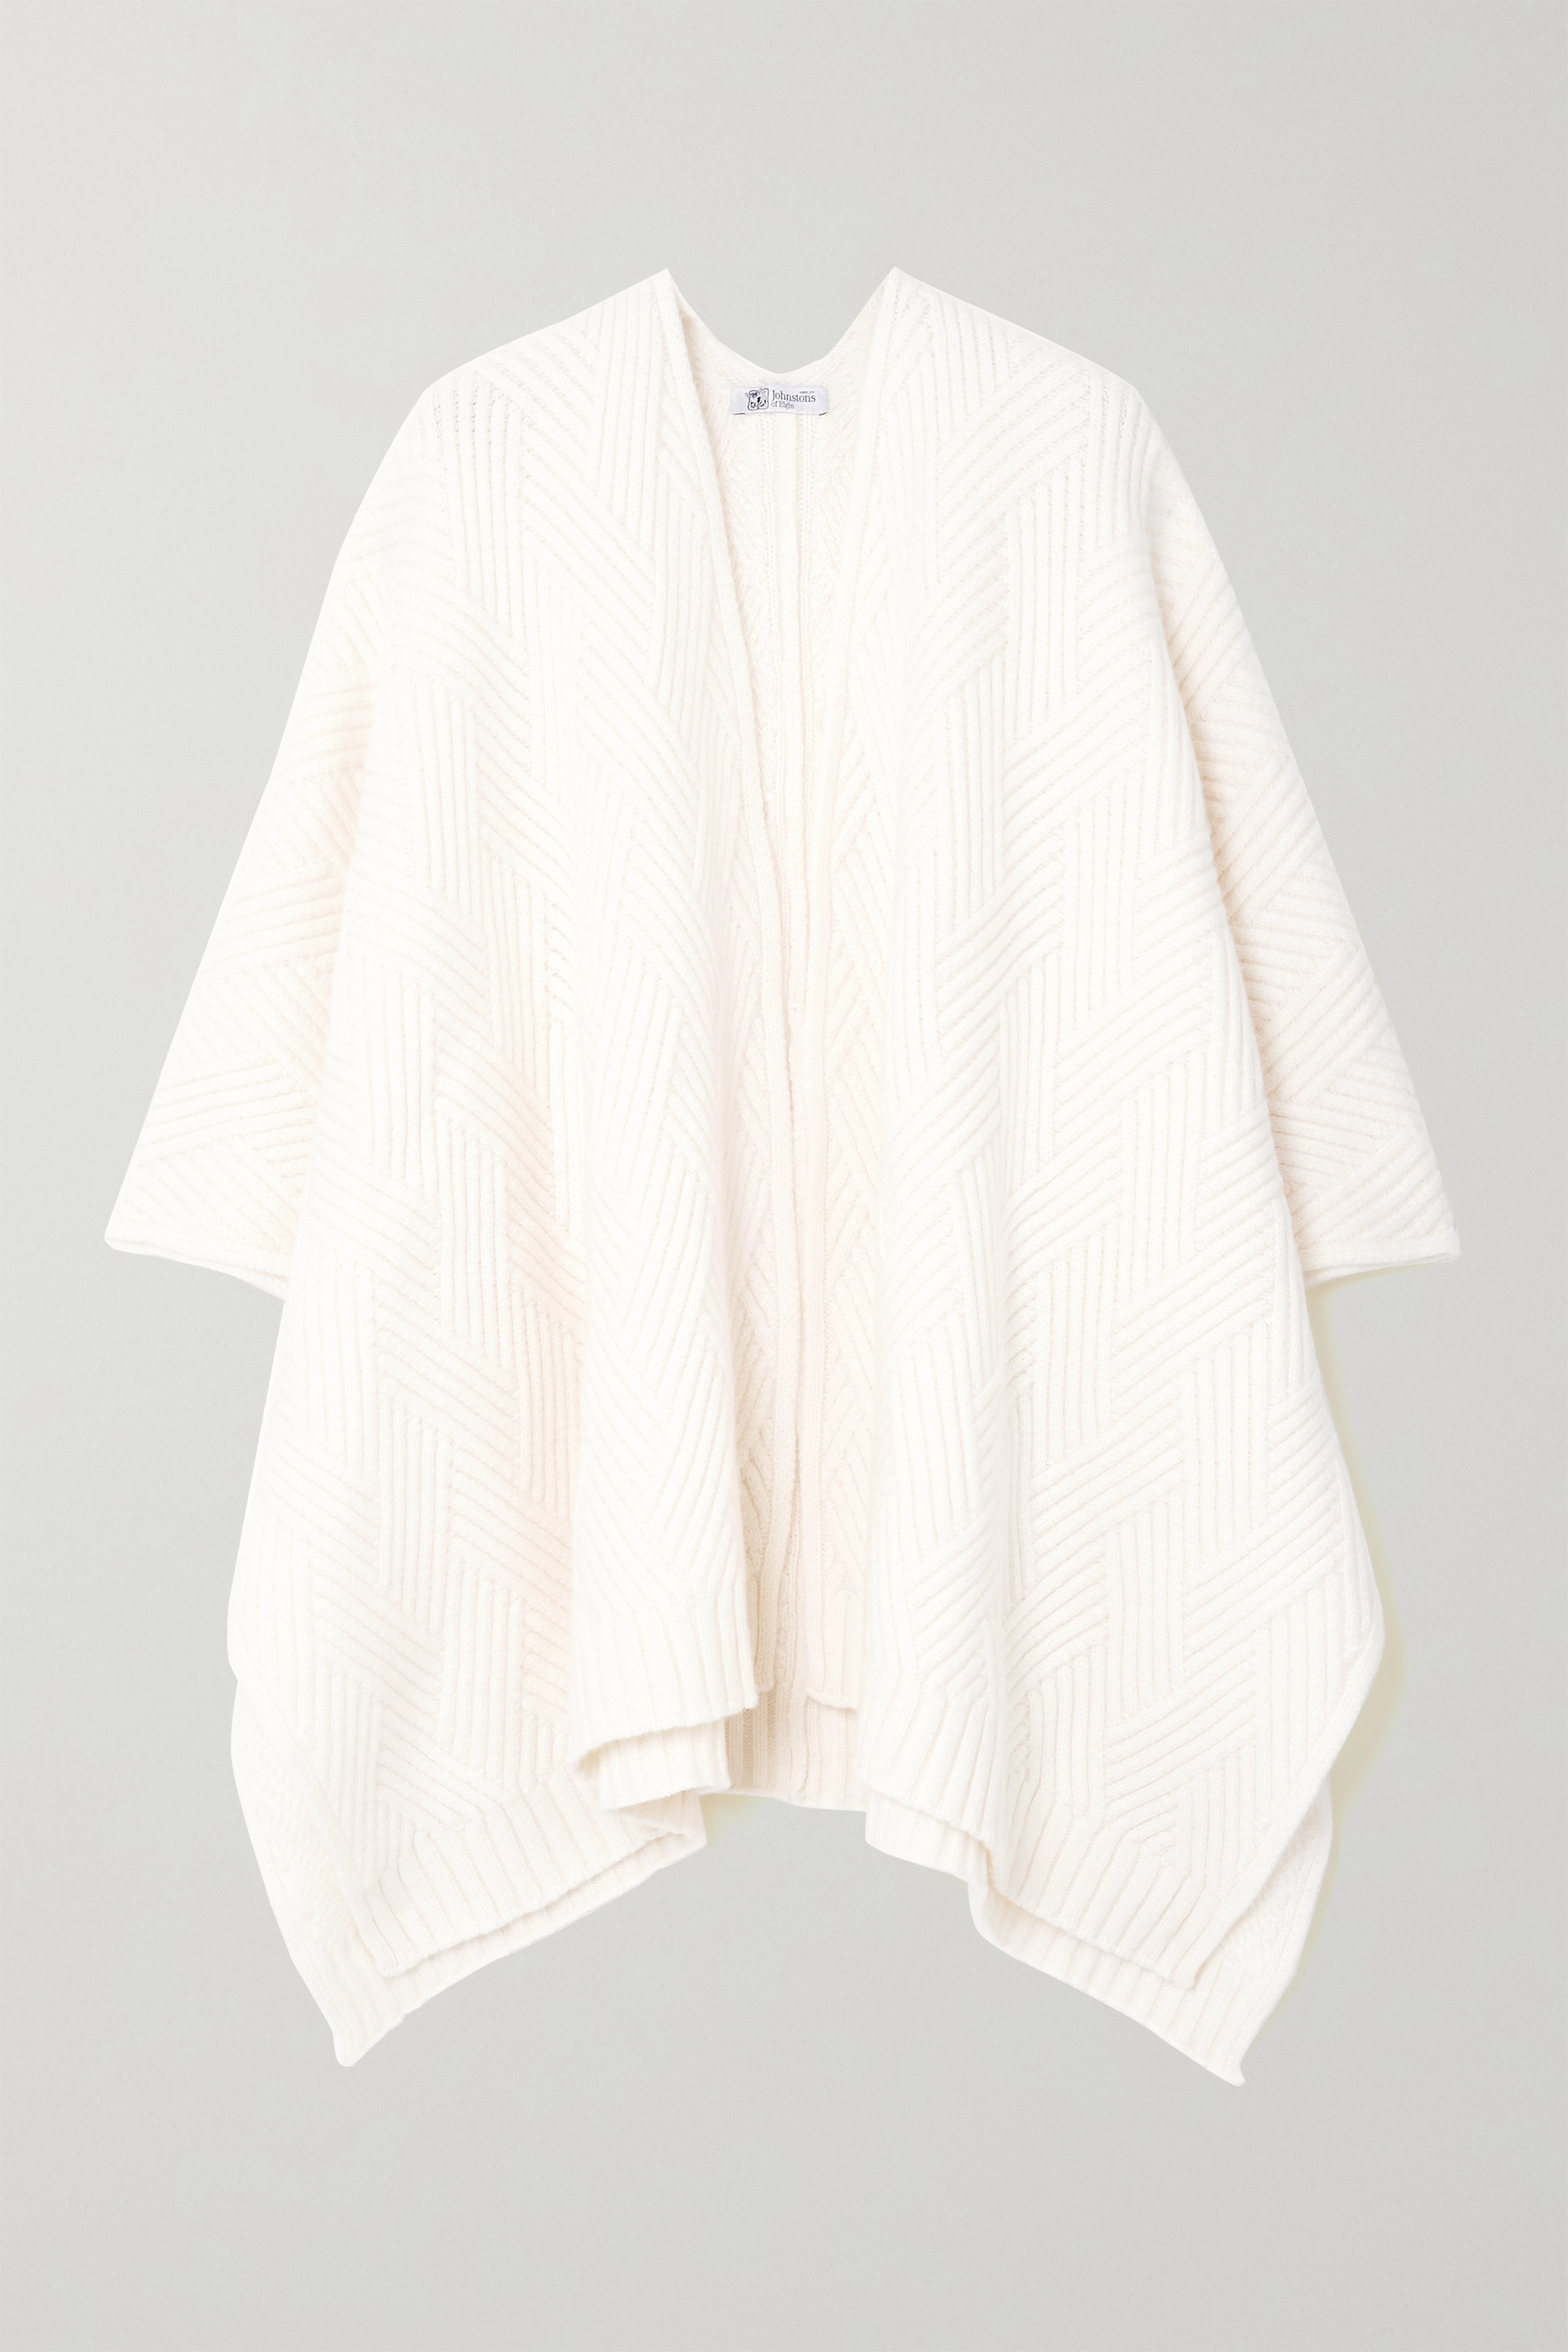 Johnstons of Elgin + NET SUSTAIN Hanna ribbed cashmere wrap